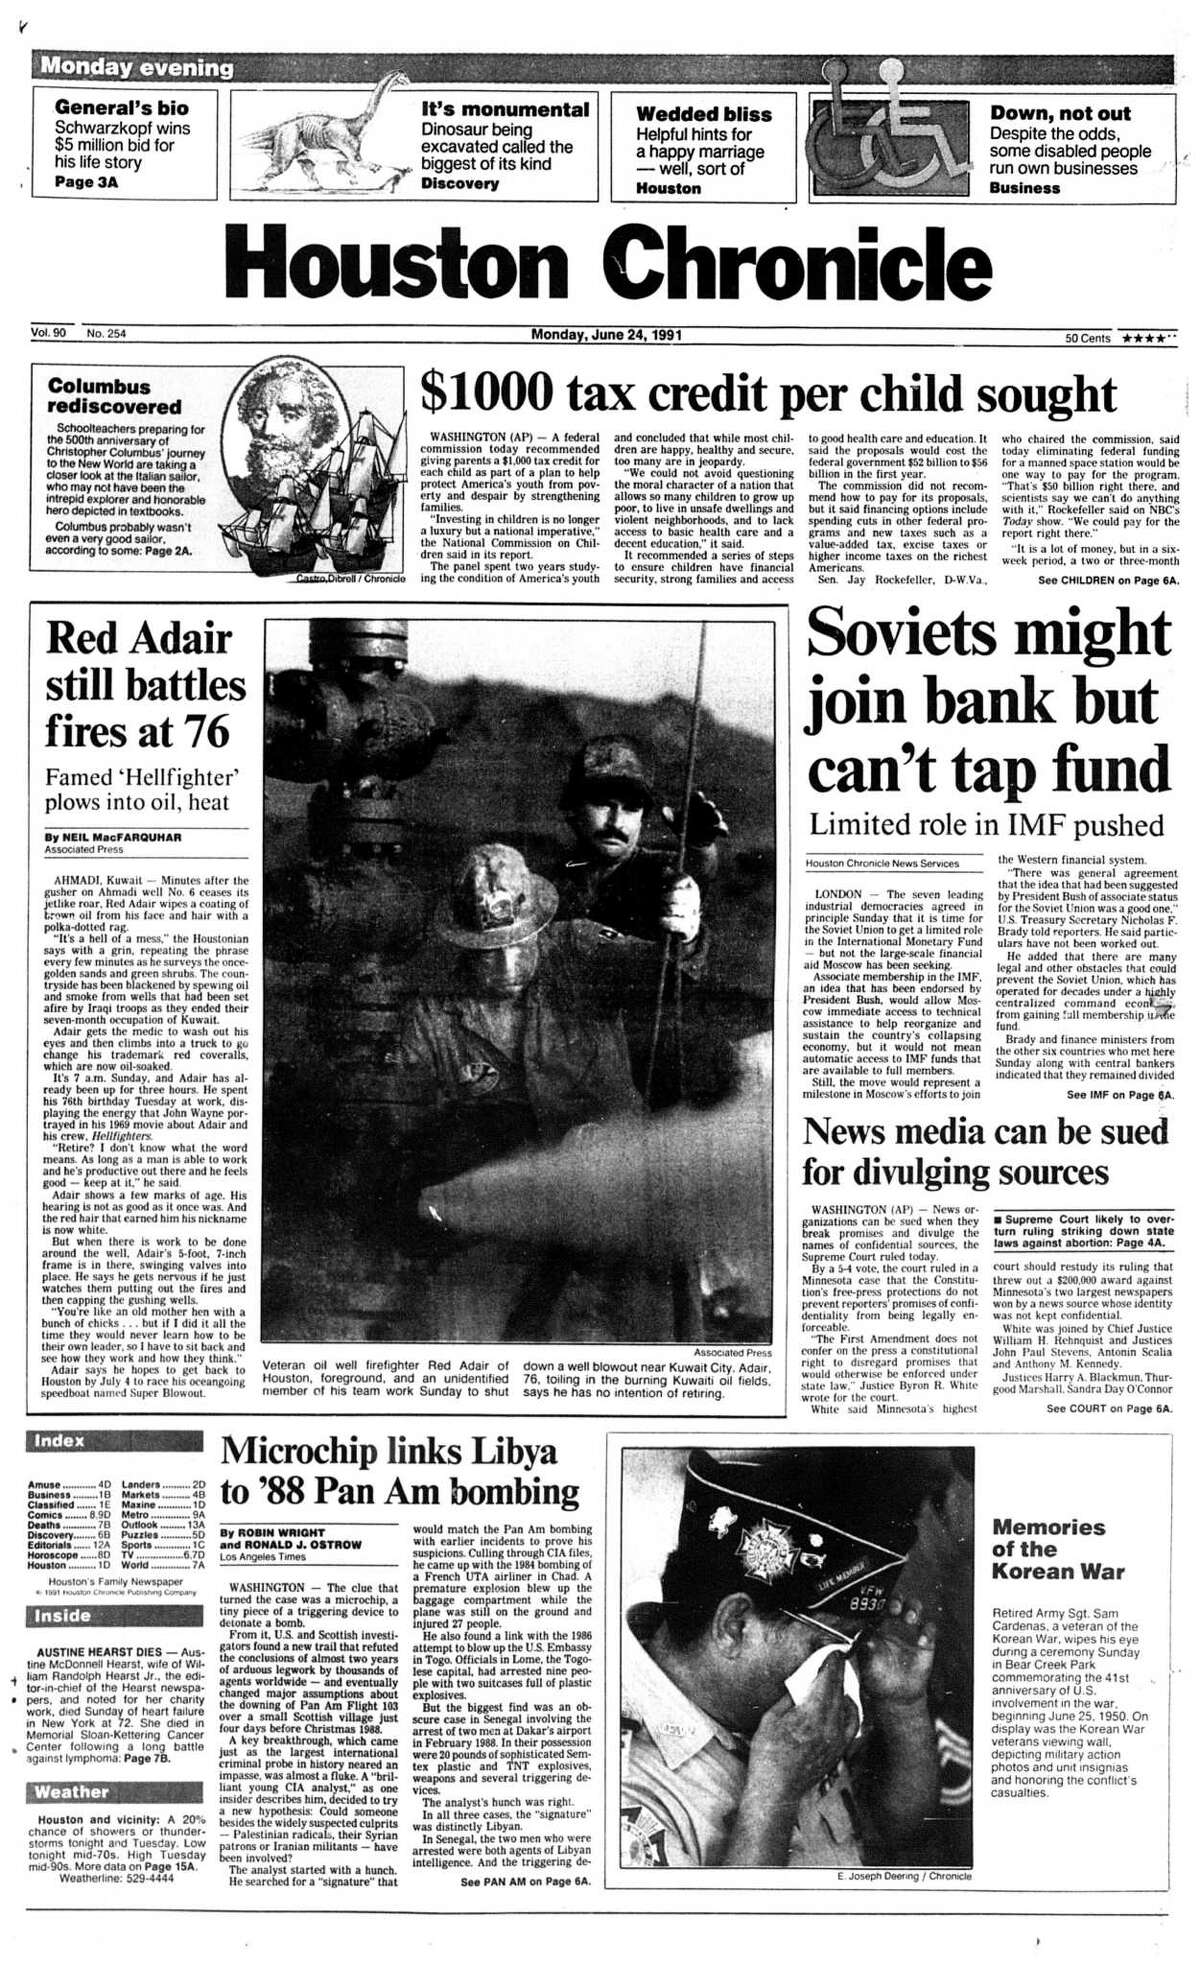 Houston Chronicle front page (HISTORIC) - June 24, 1991 - section 1, page 1. Red Adair still battles fires at 76